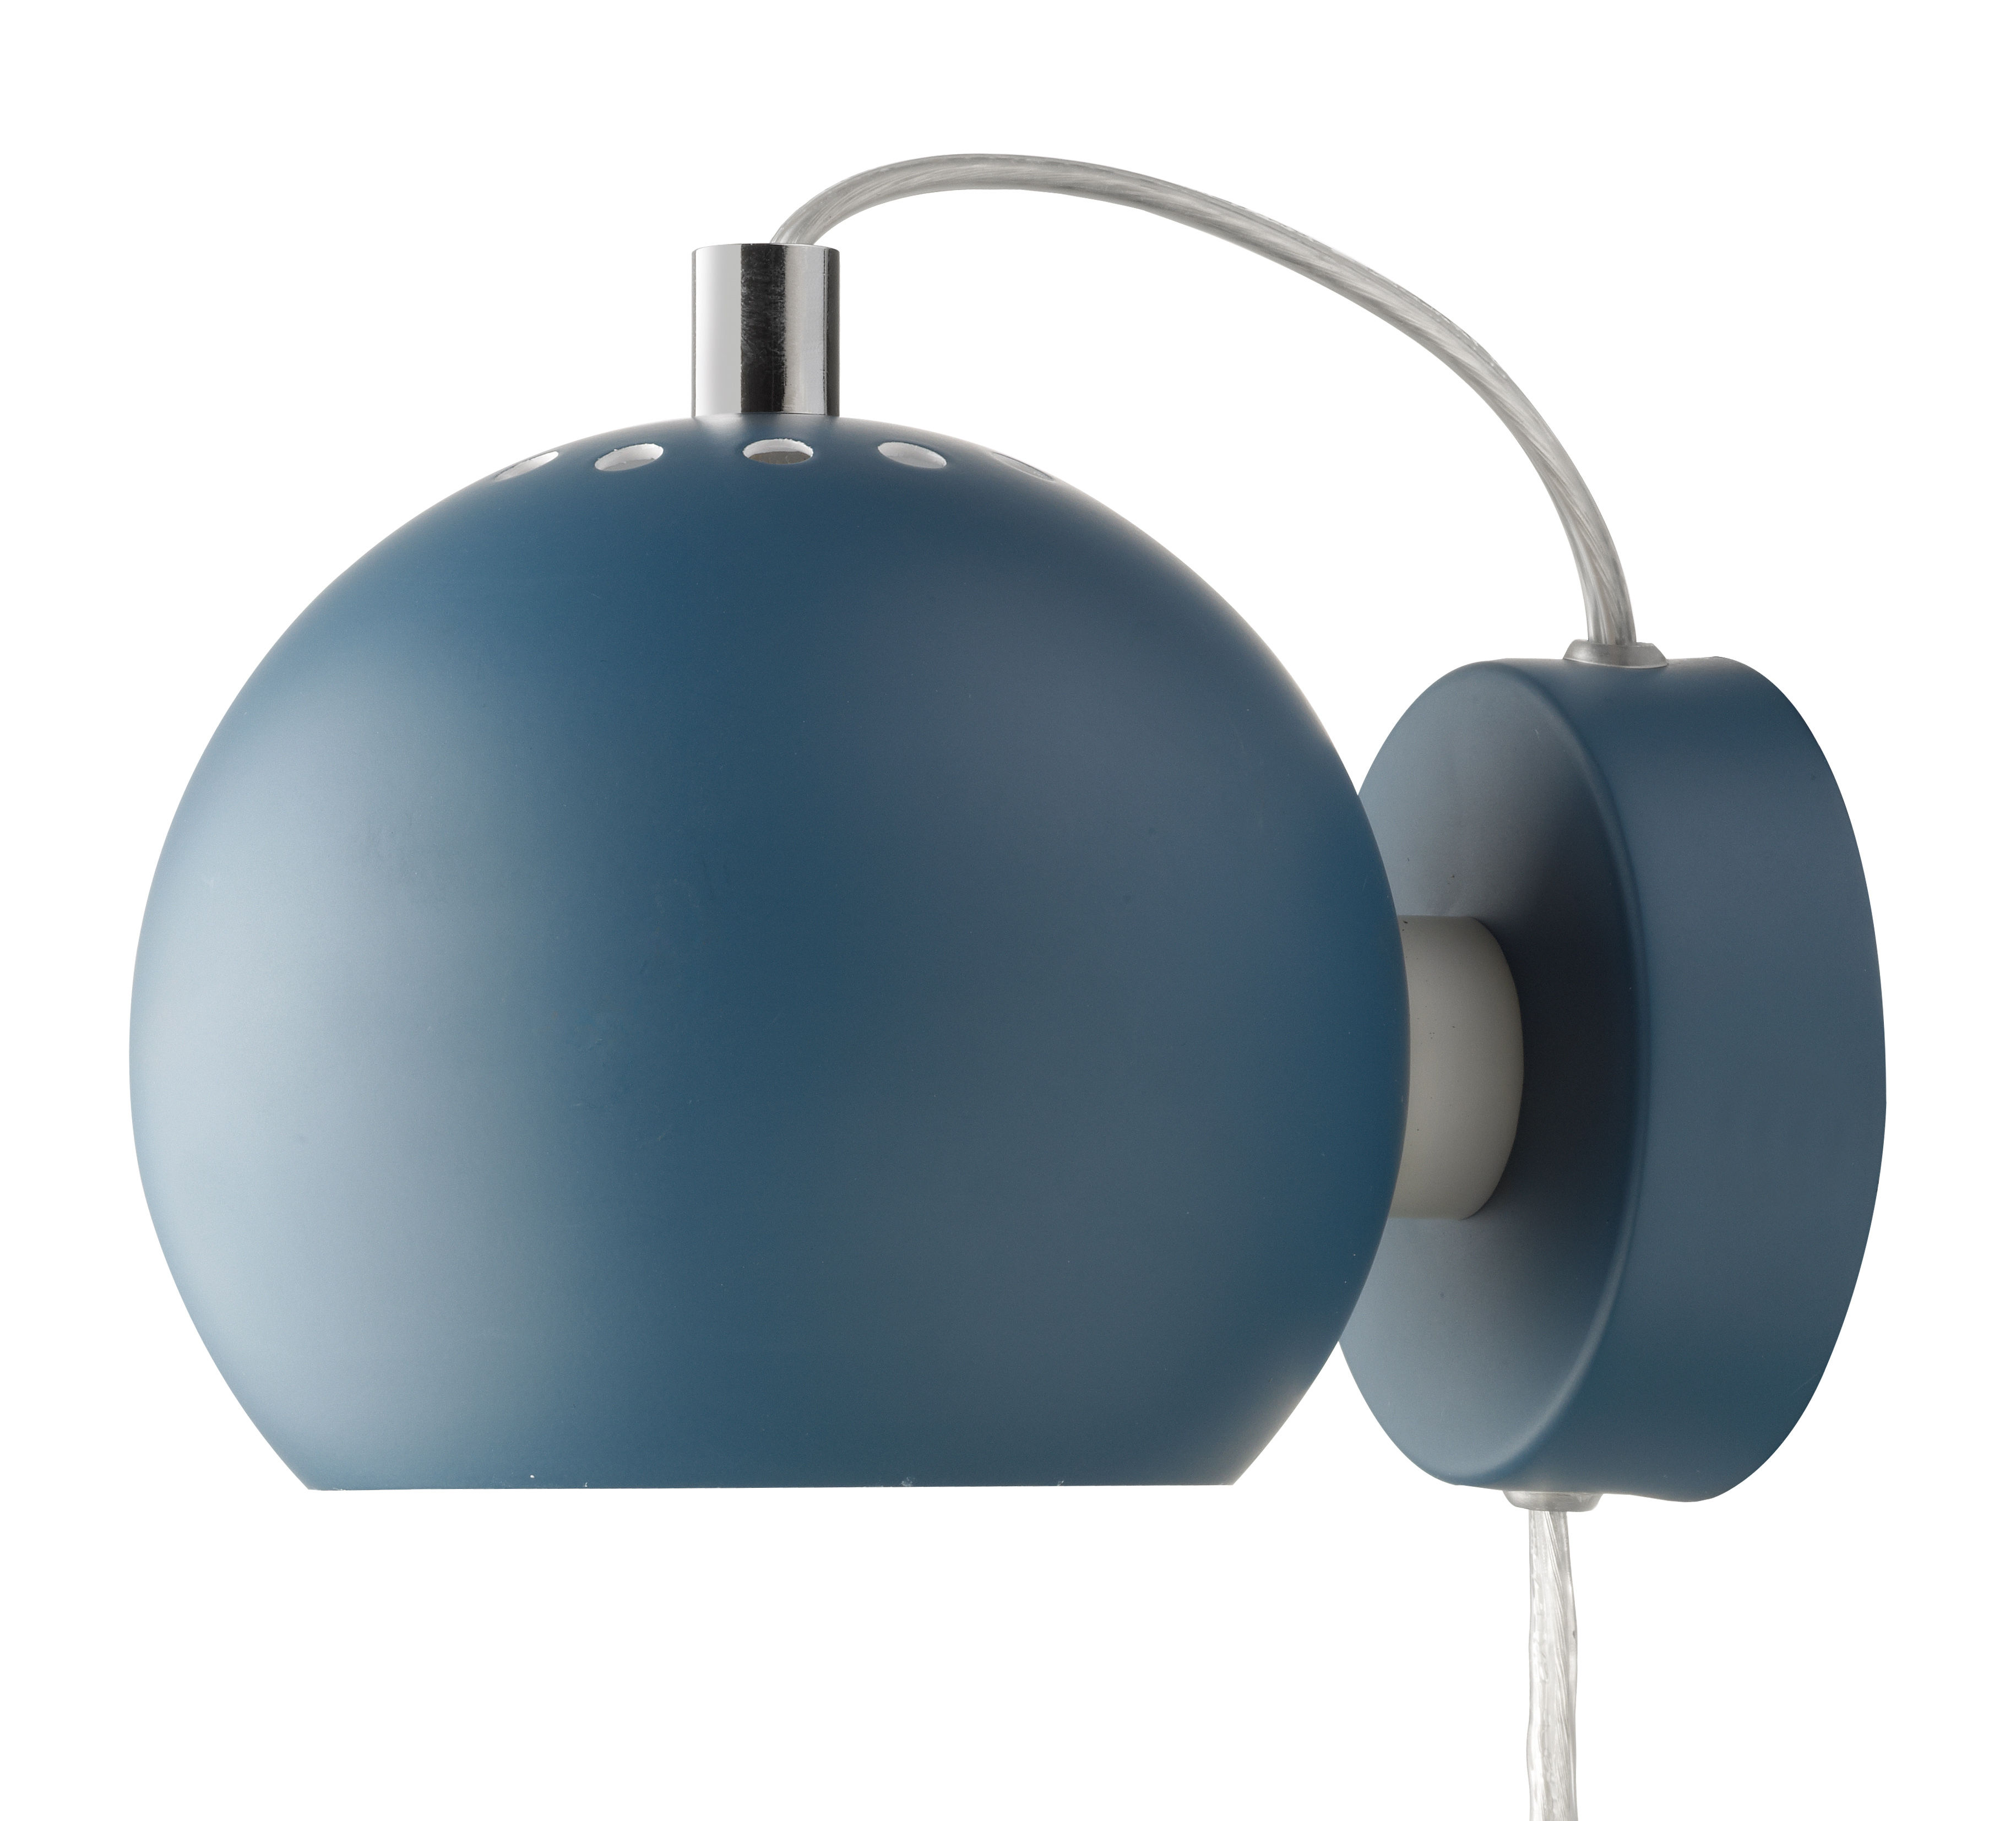 Lighting - Wall Lights - Ball Wall light with plug by Frandsen - Petroleum blue - Varnished metal